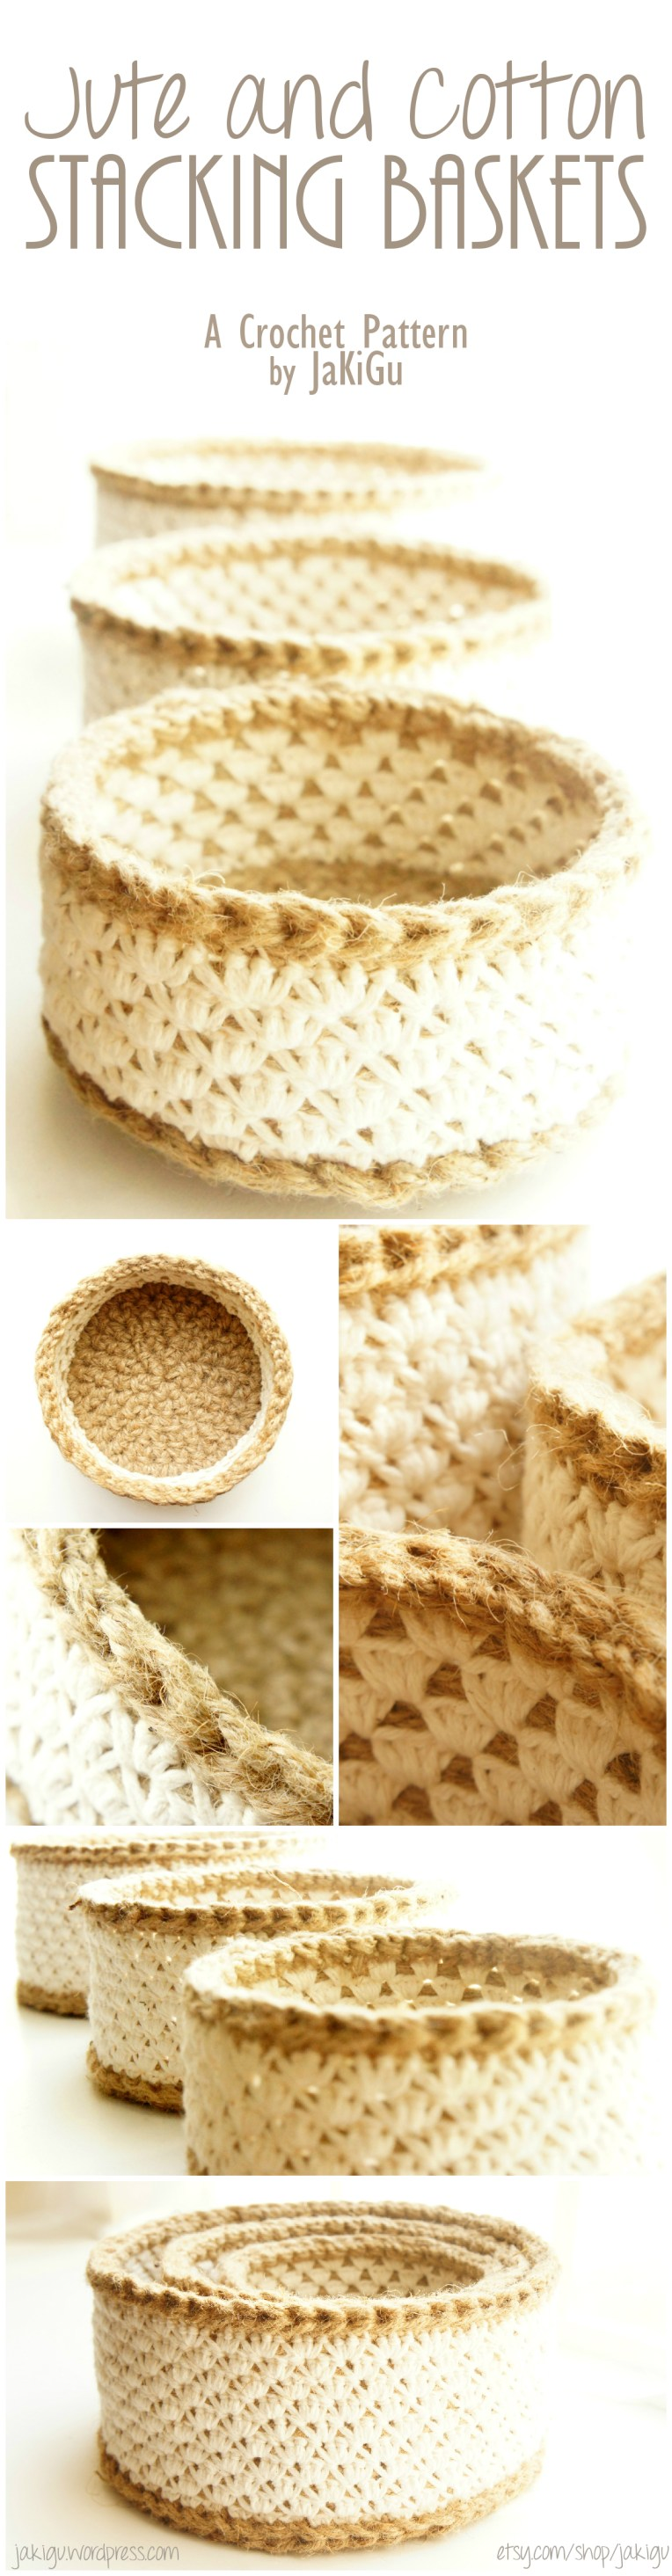 Stacking Crochet Baskets, a Pattern Designed by JaKiGu